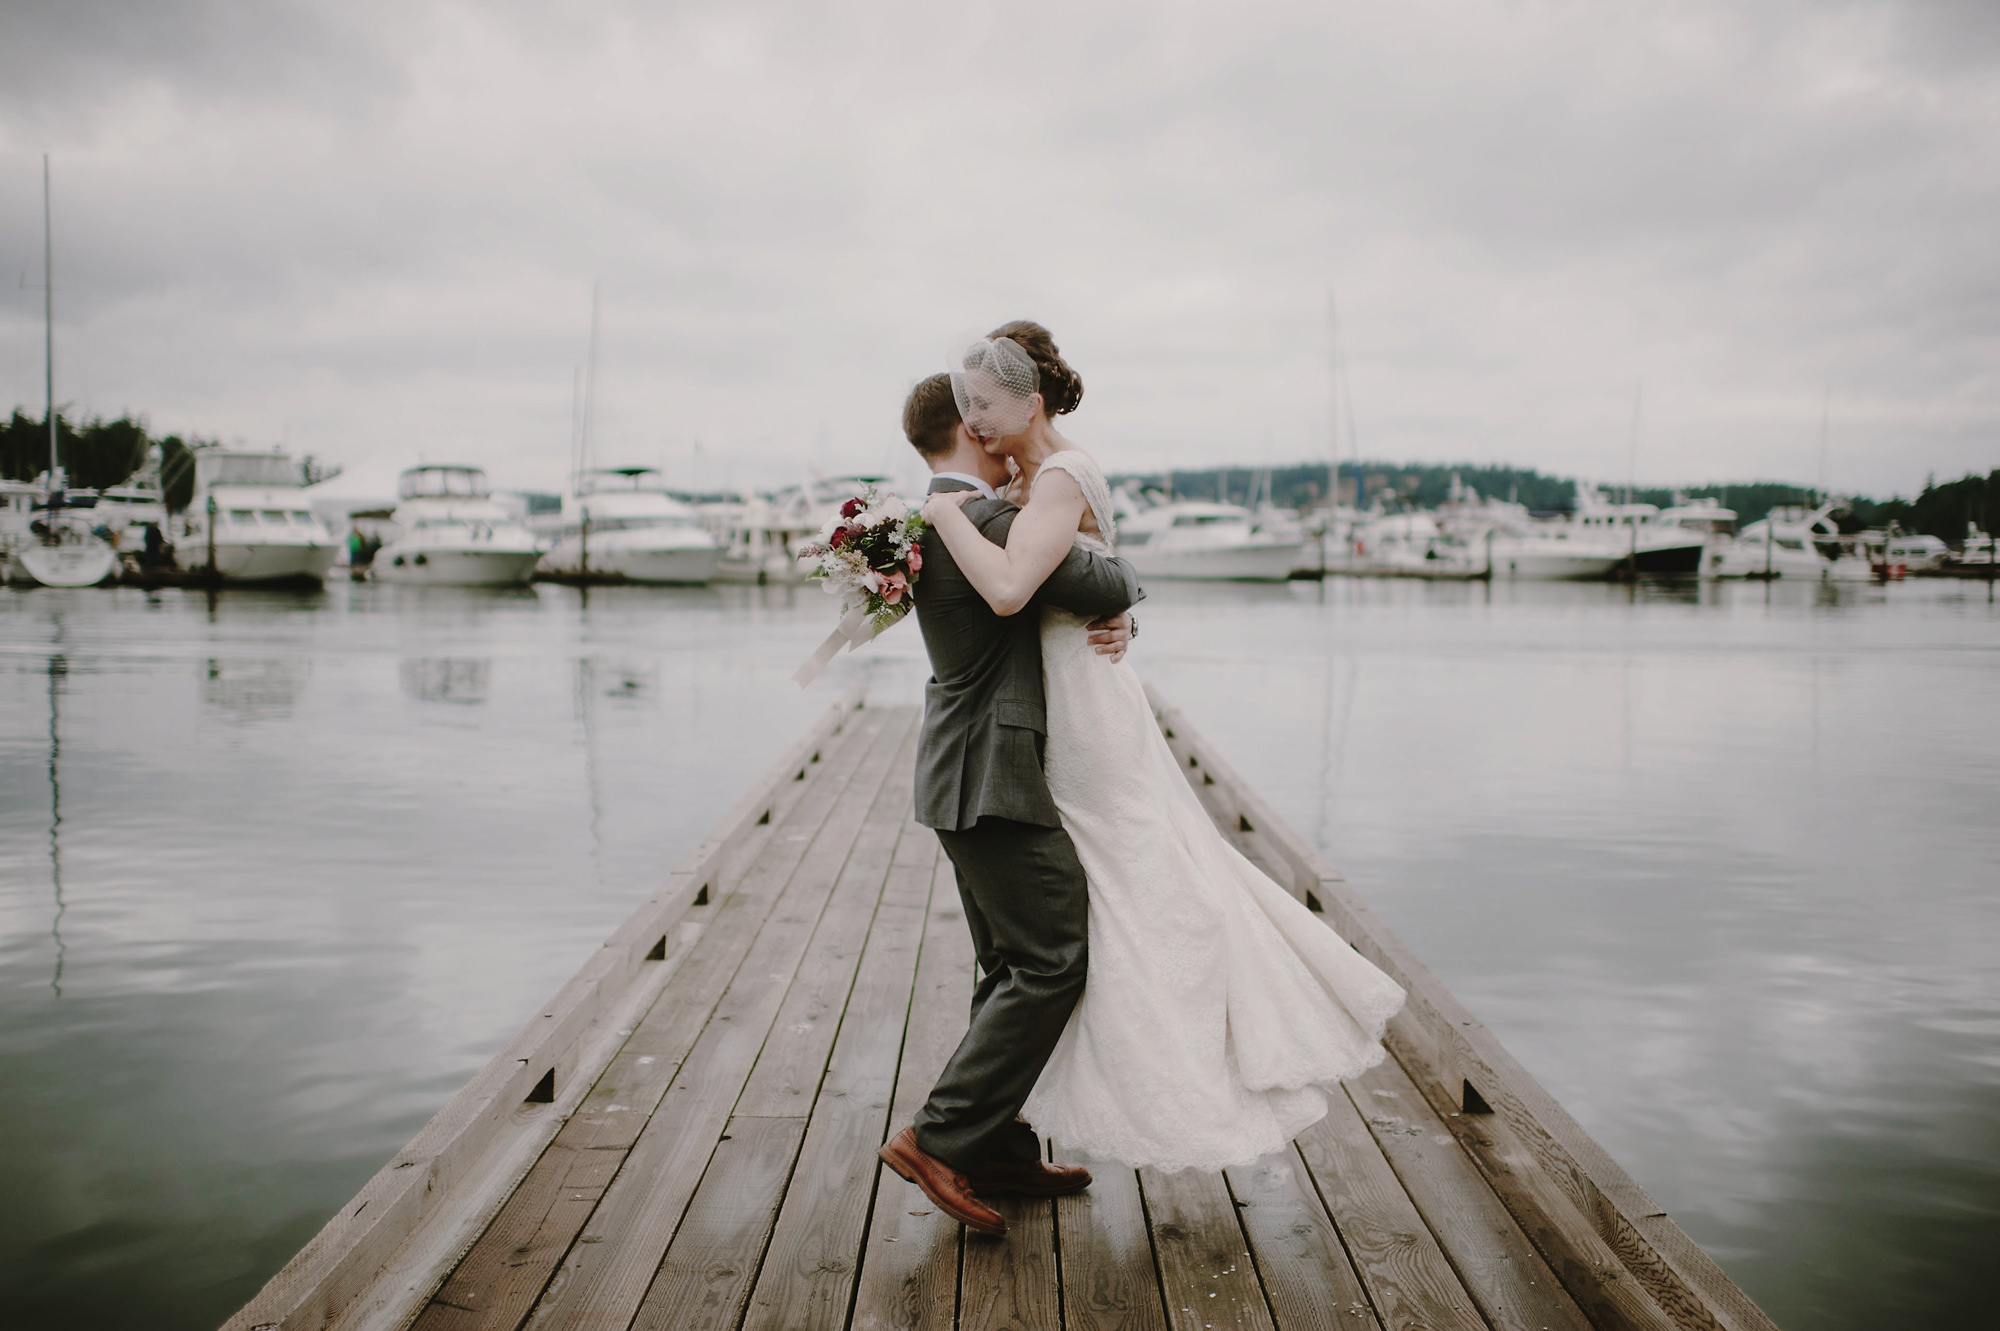 Groom sweeps bride off feet at Marina - photo by Kristen Marie Parker